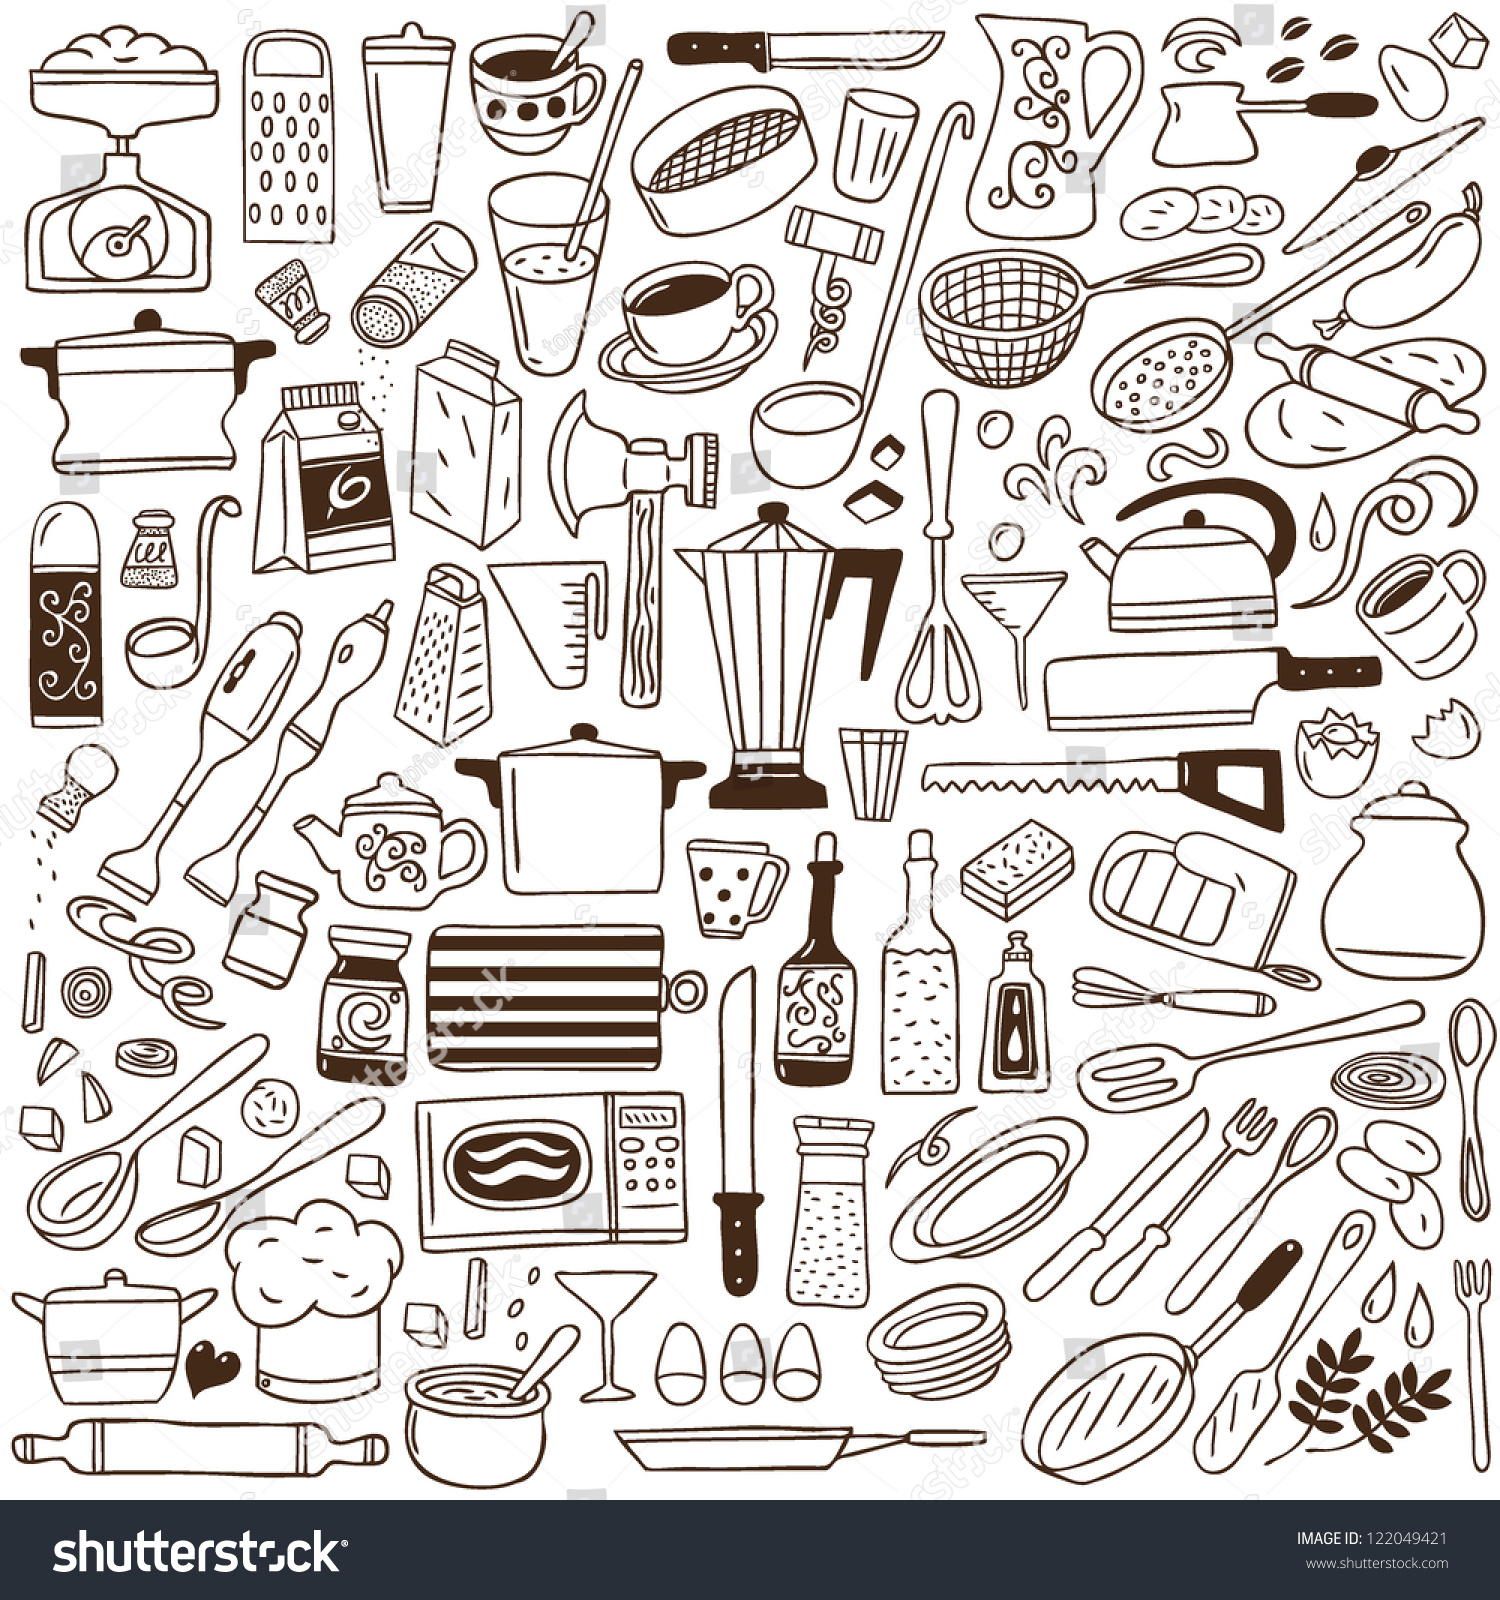 Kitchen tools drawing - Kitchen Tools Doodles Collection